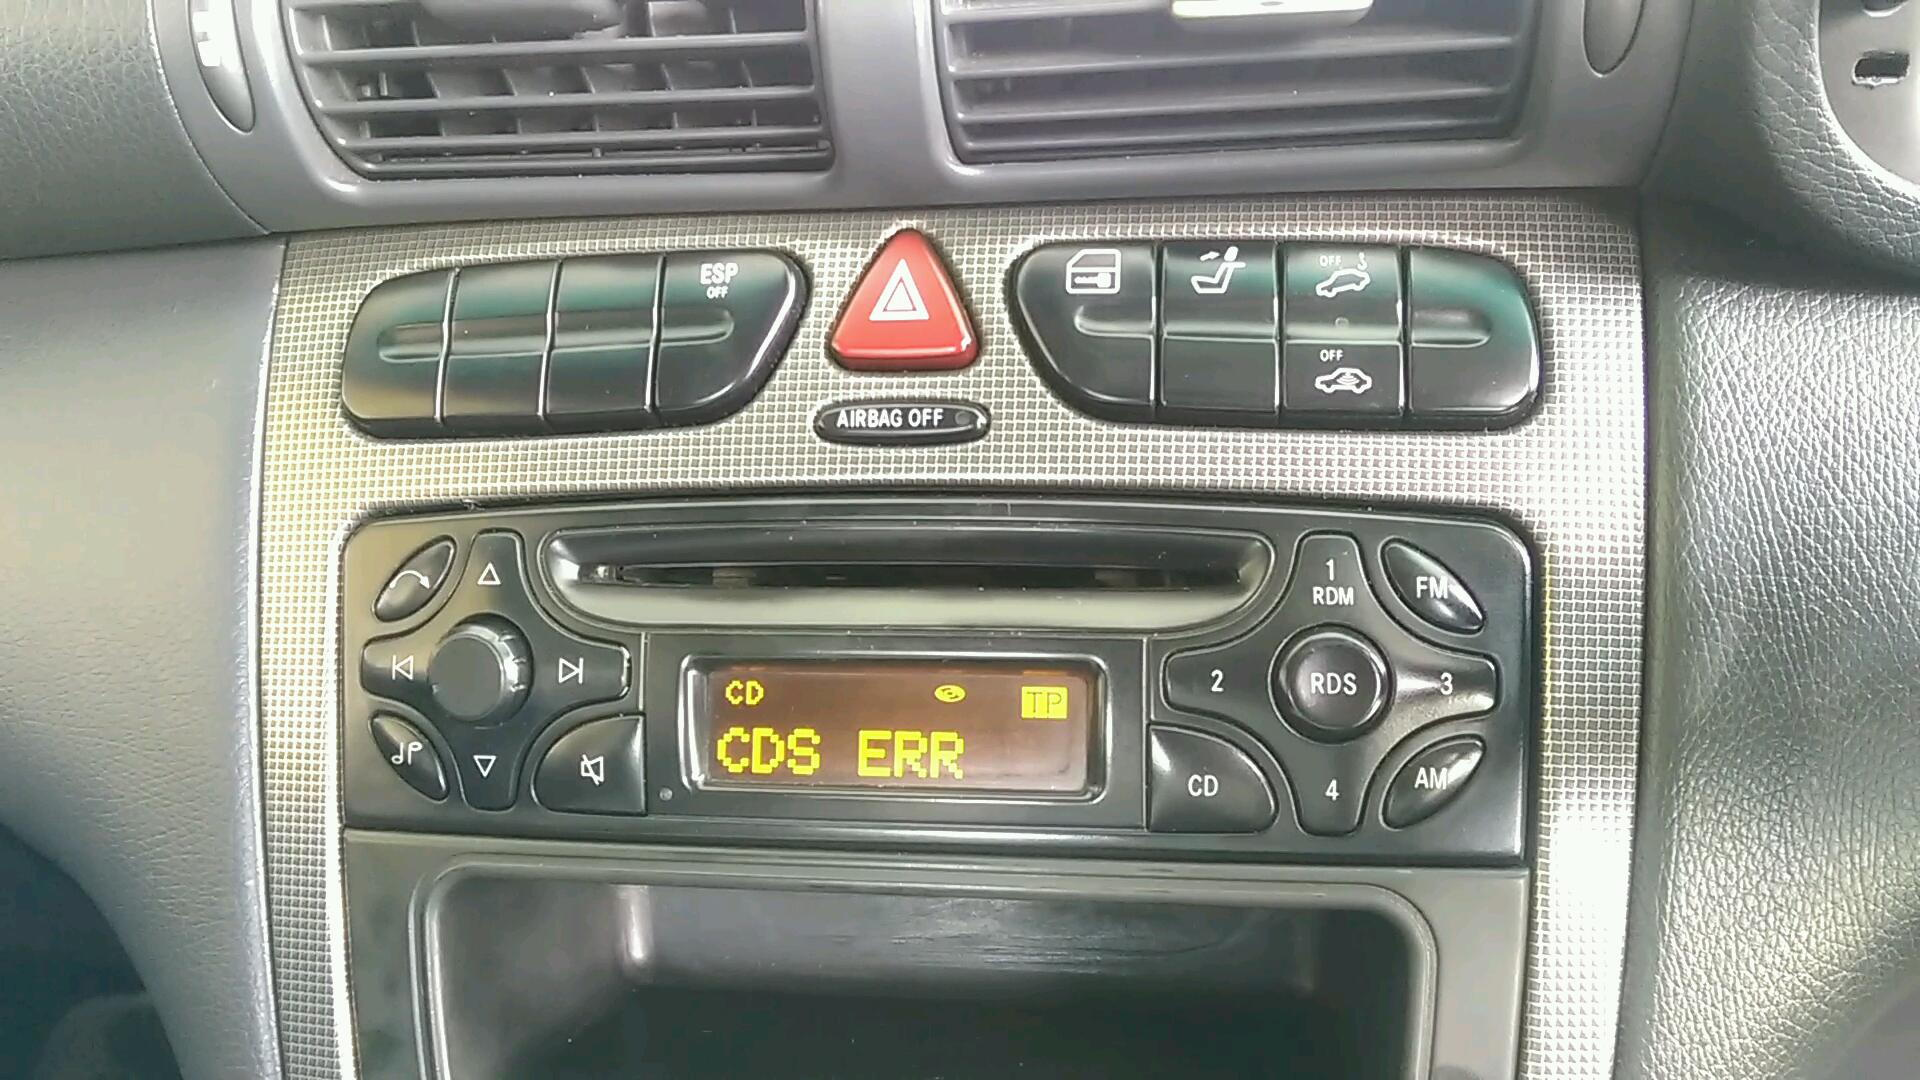 mercedes w203 cds err on audio 10 stereo - MBWorld org Forums